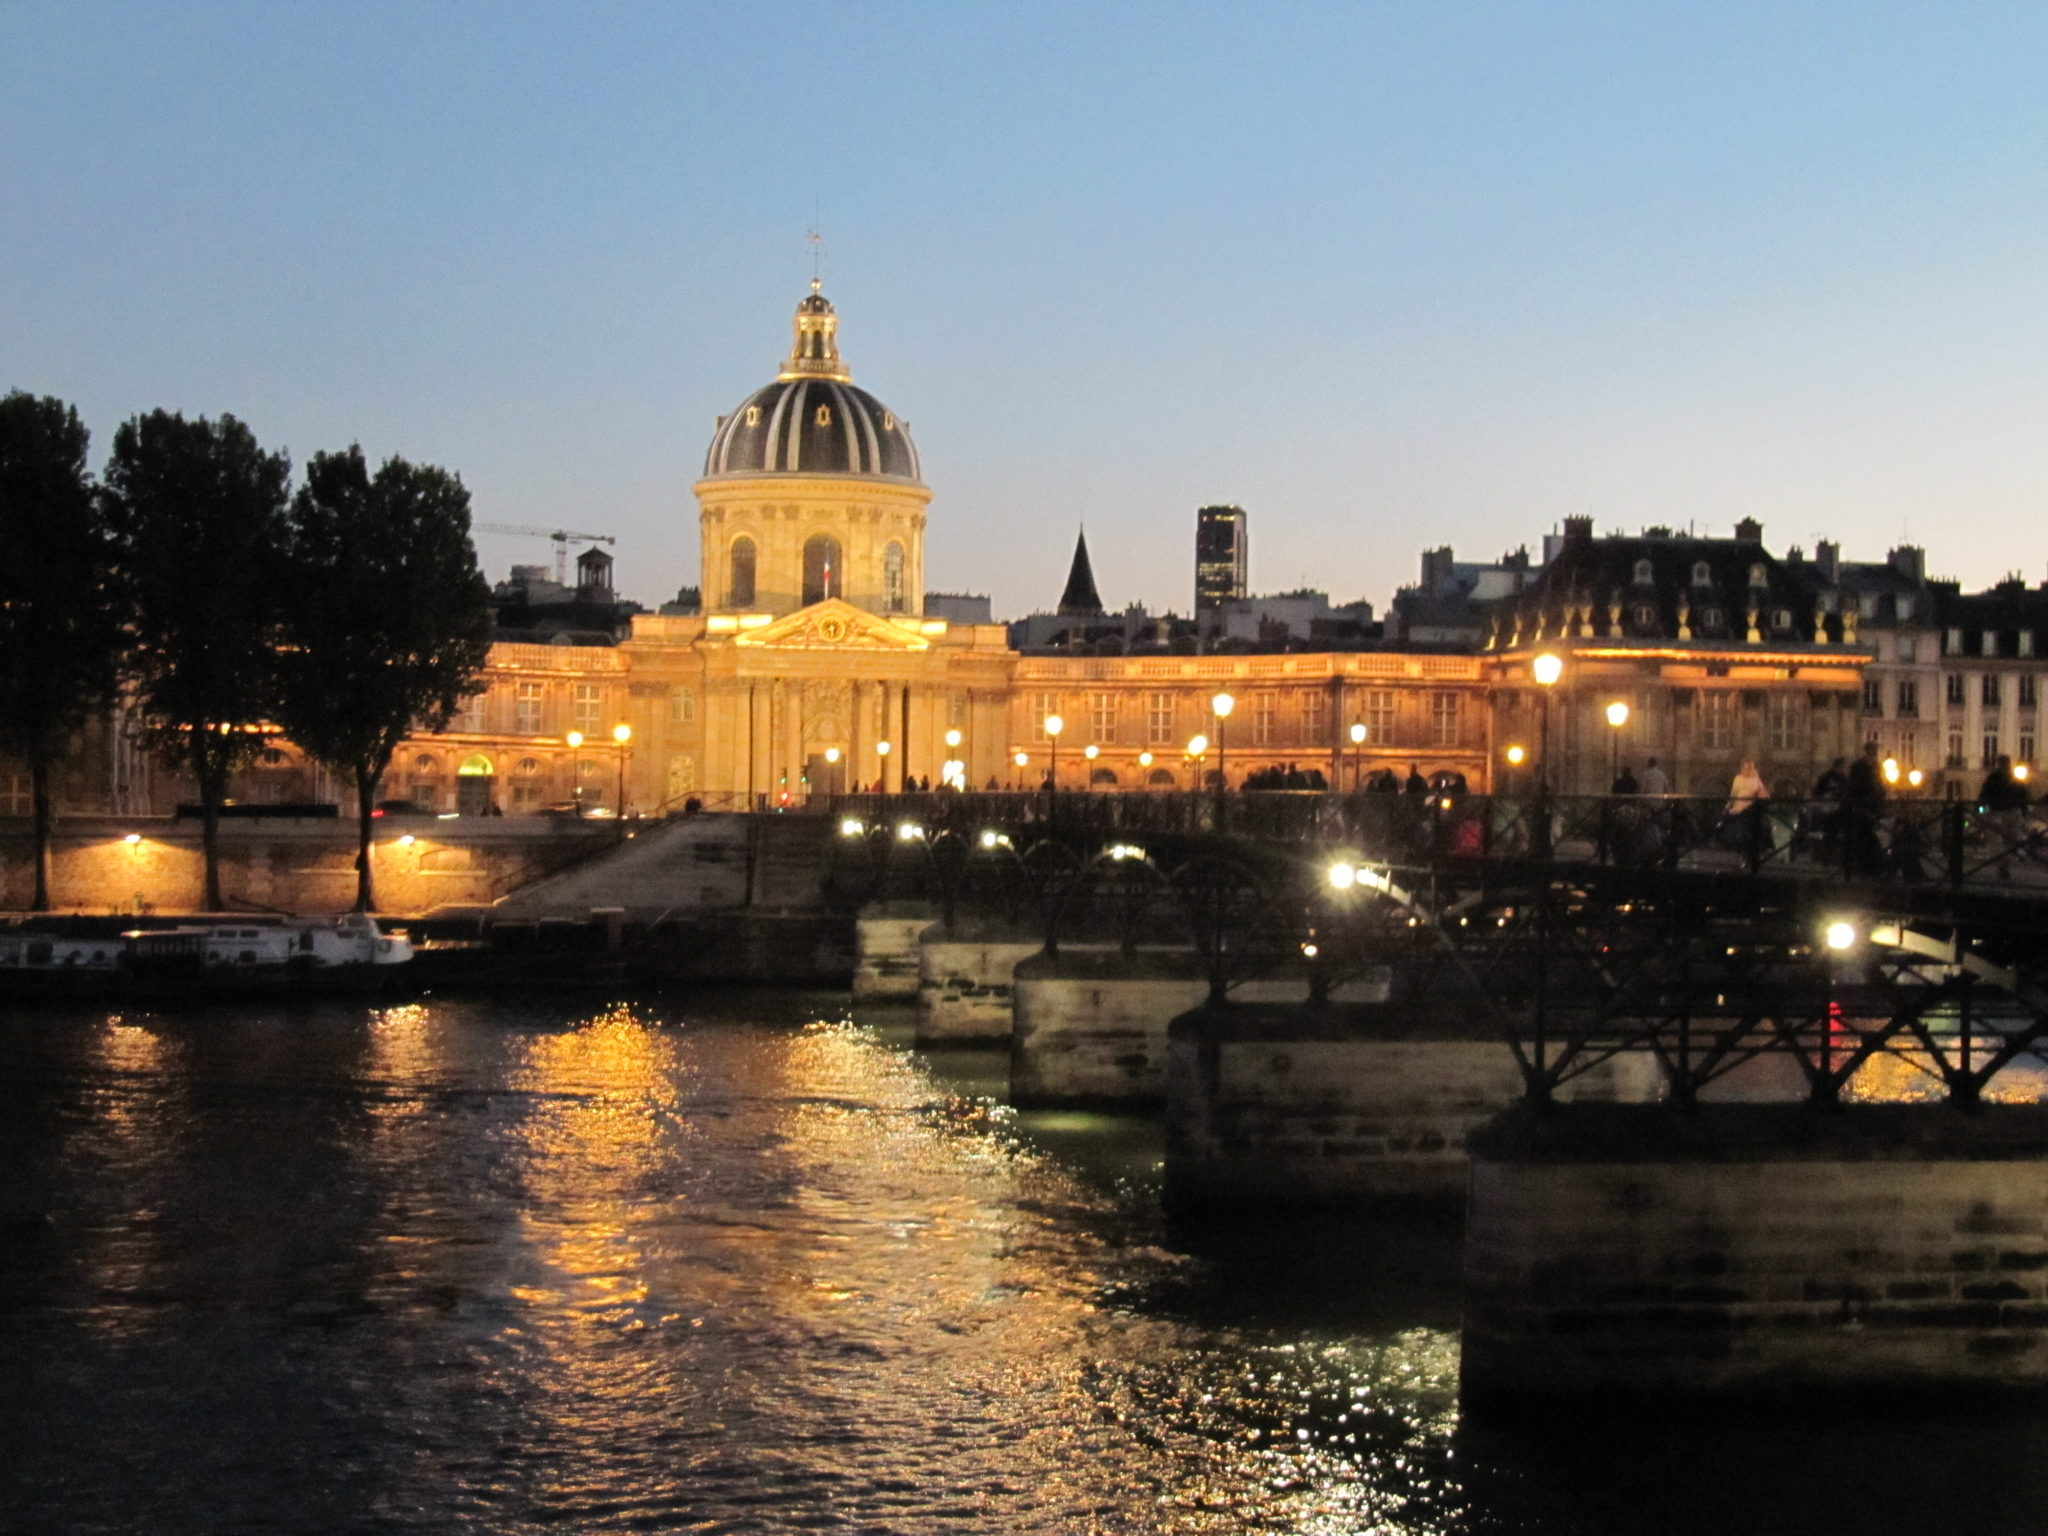 The River Seine at night.